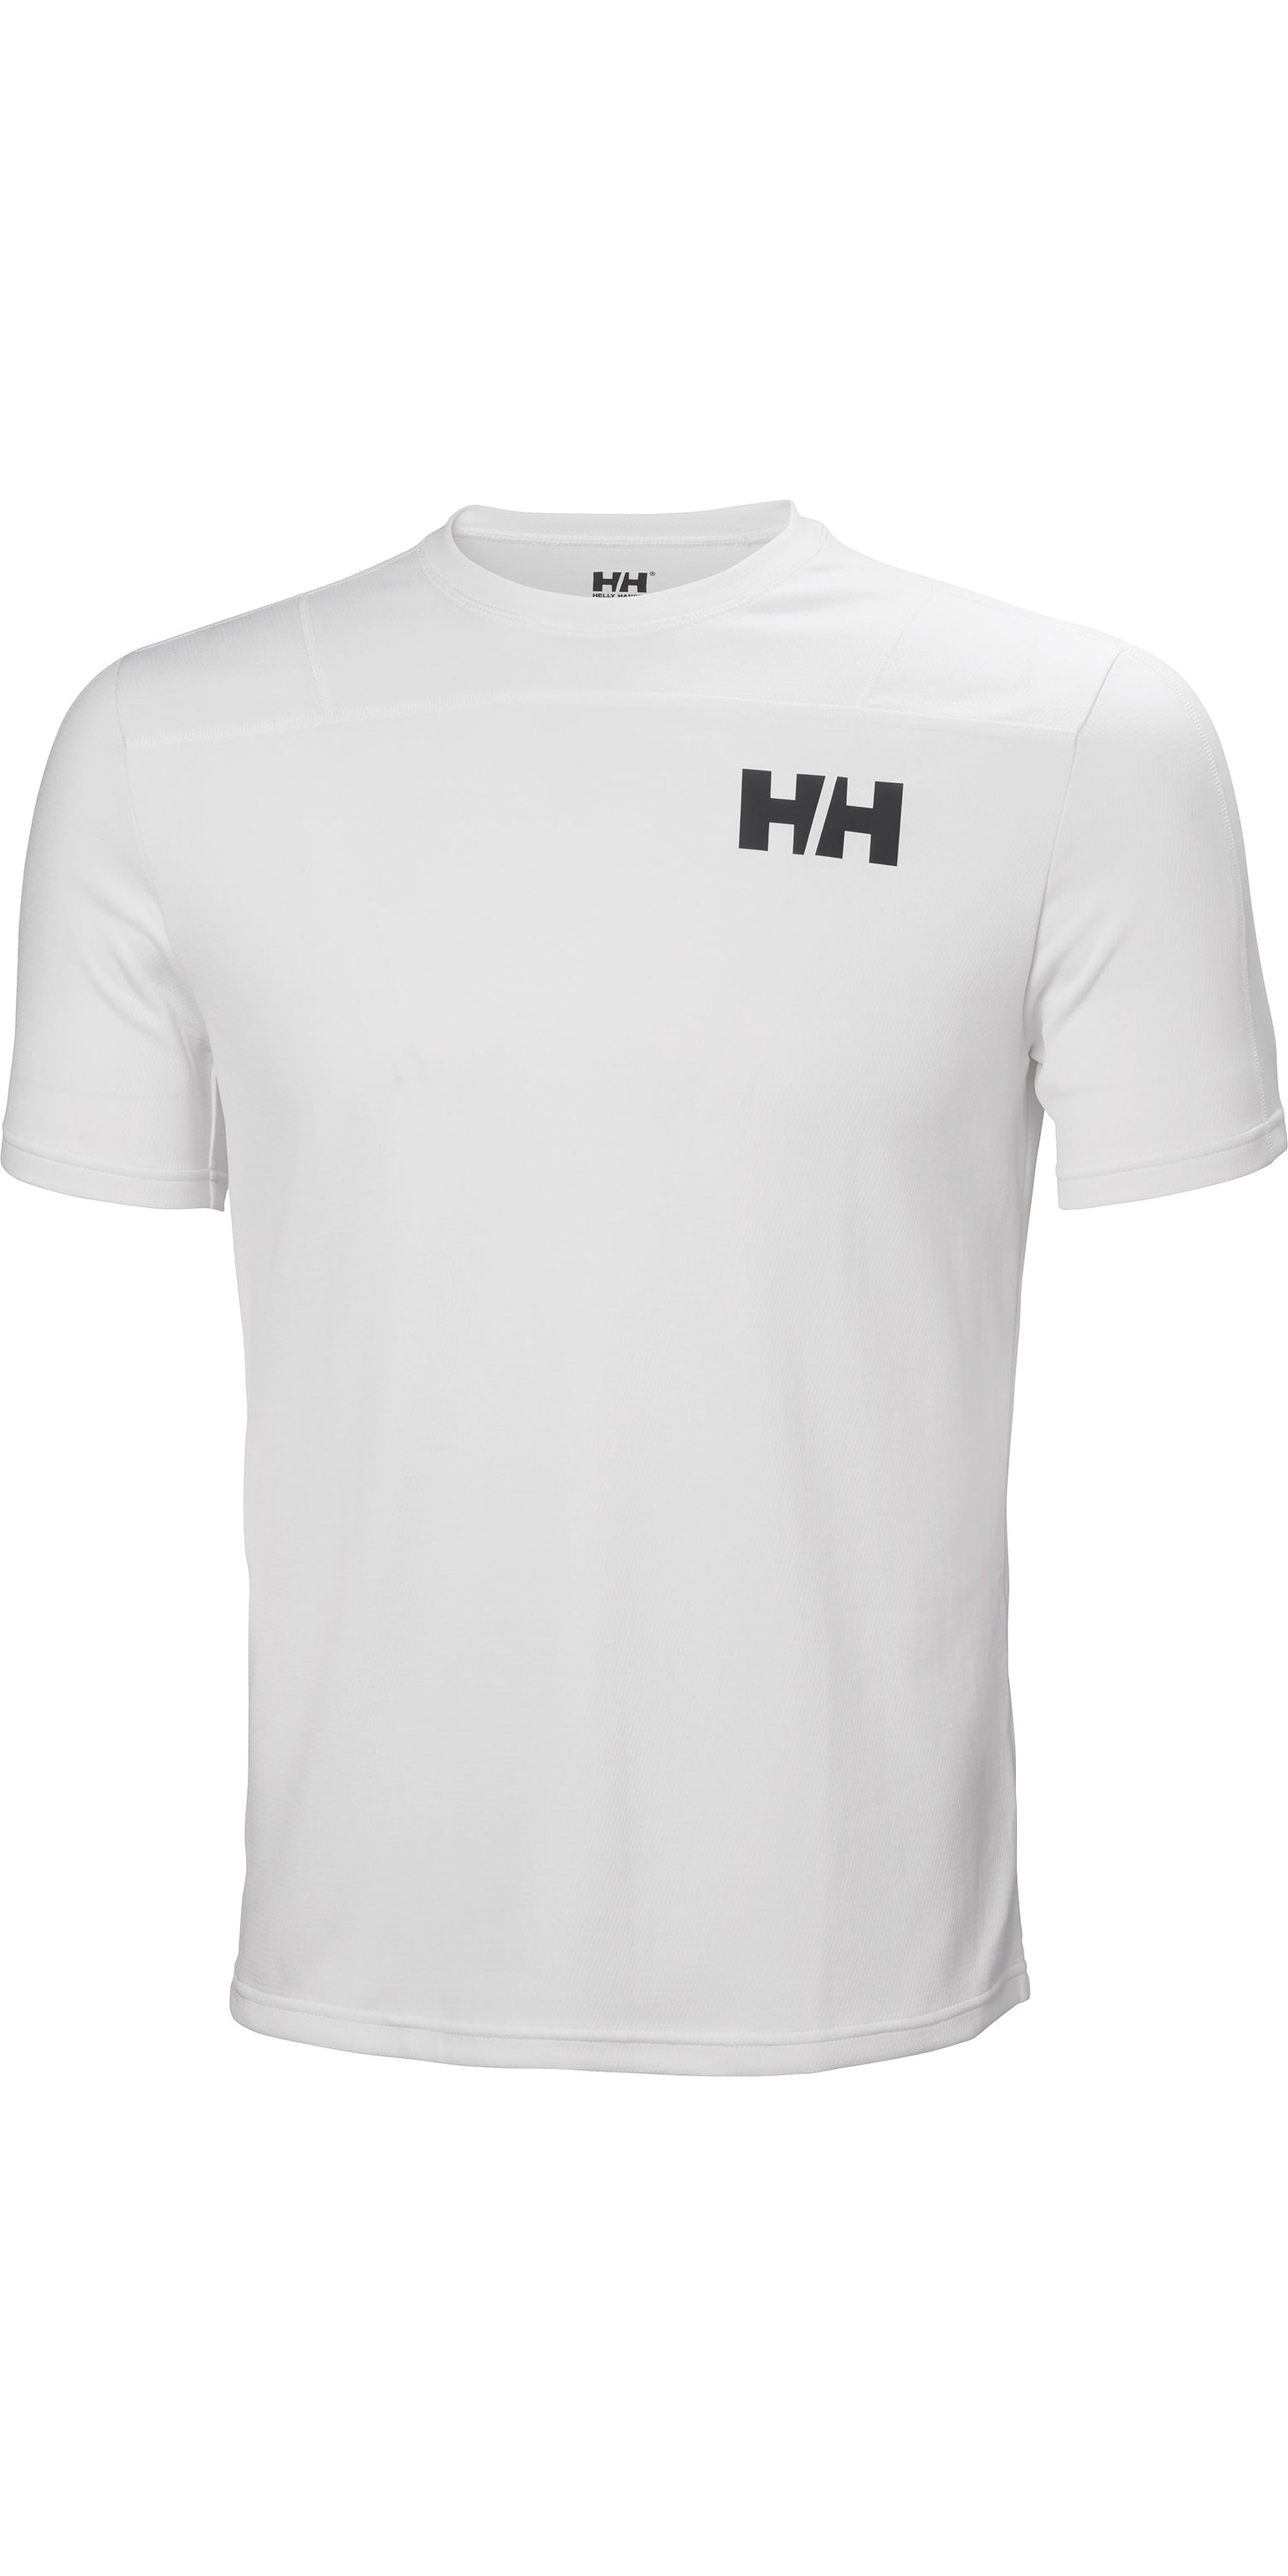 17464aef49d 2019 Helly Hansen Mens Lifa Active Light Short Sleeve T-shirt White 49330 -  Thermal Base Layer | Wetsuit Outlet